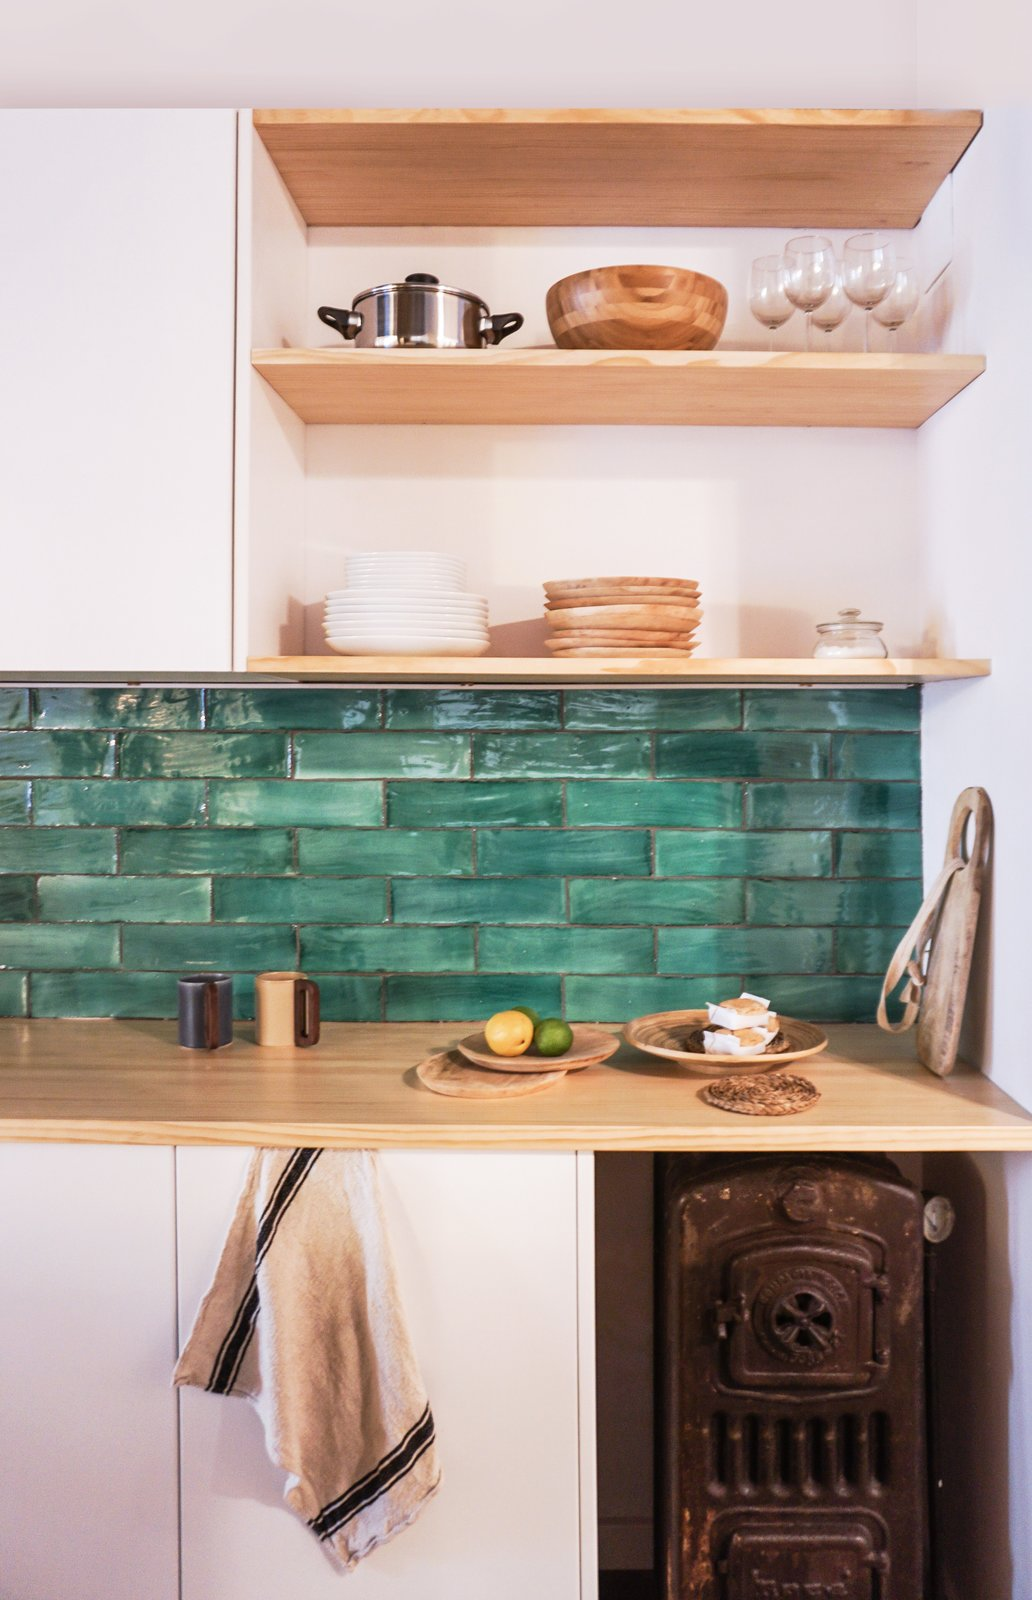 Kitchen, Wood Counter, and Ceramic Tile Backsplashe An original boiler the designers discovered during the renovation was kept in the kitchen as decoration. The counter is white pine, and the green tiles were sourced from Can Benito a studio in Mallorca.  Photo 3 of 9 in A Barcelona Apartment Gets a Softly Modern Renovation